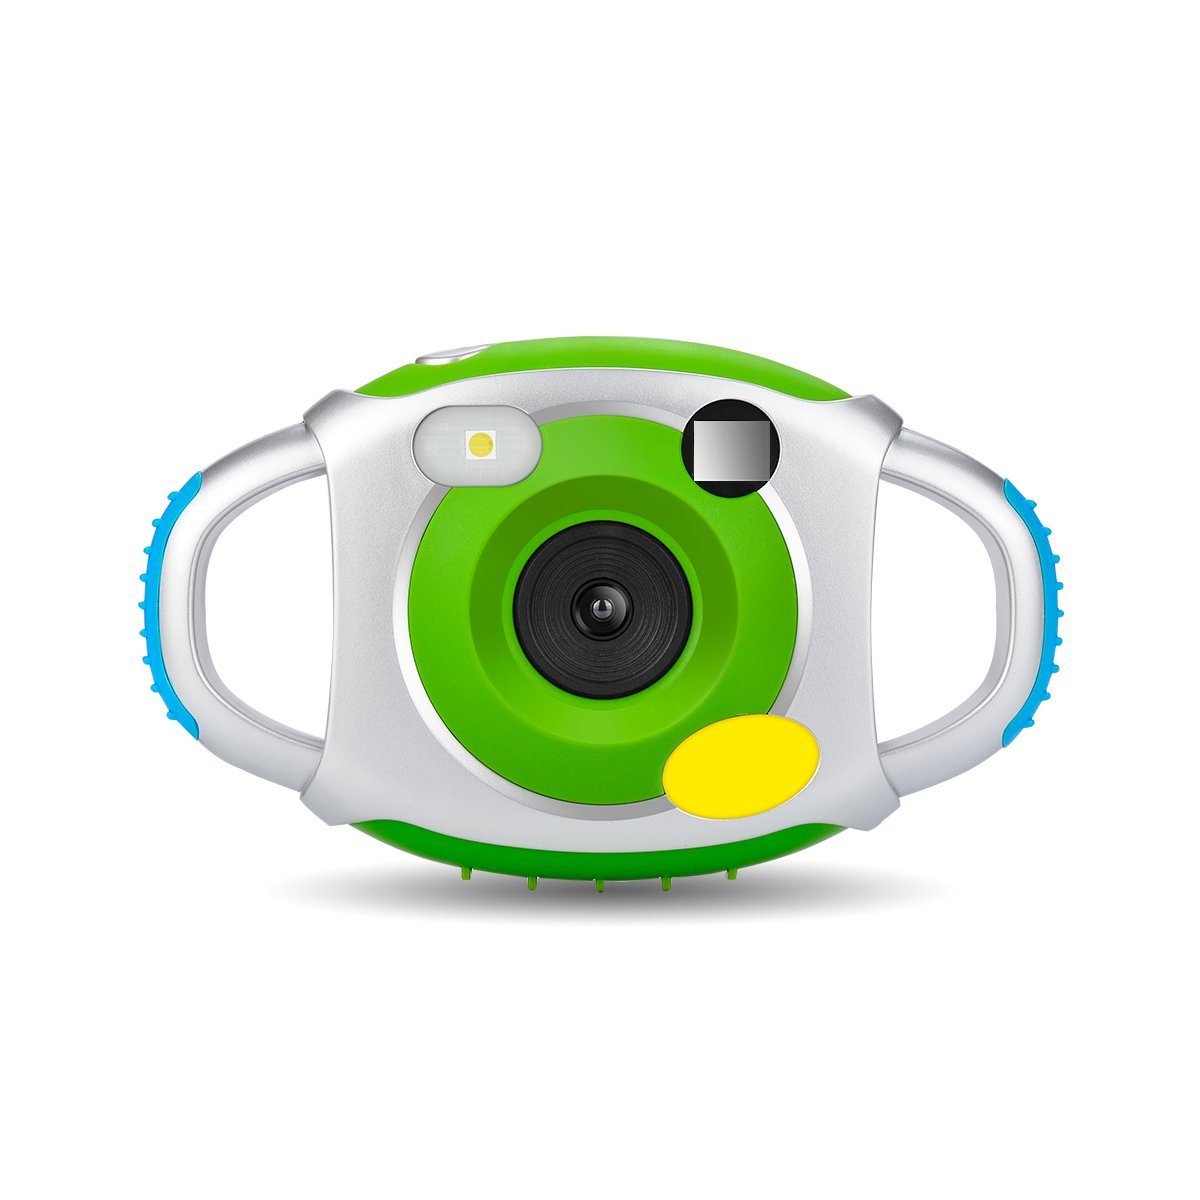 Kids Camera, Powpro Pcam PP-CDFP Kids Digital Video Camera with Soft Silicone Protective Shell